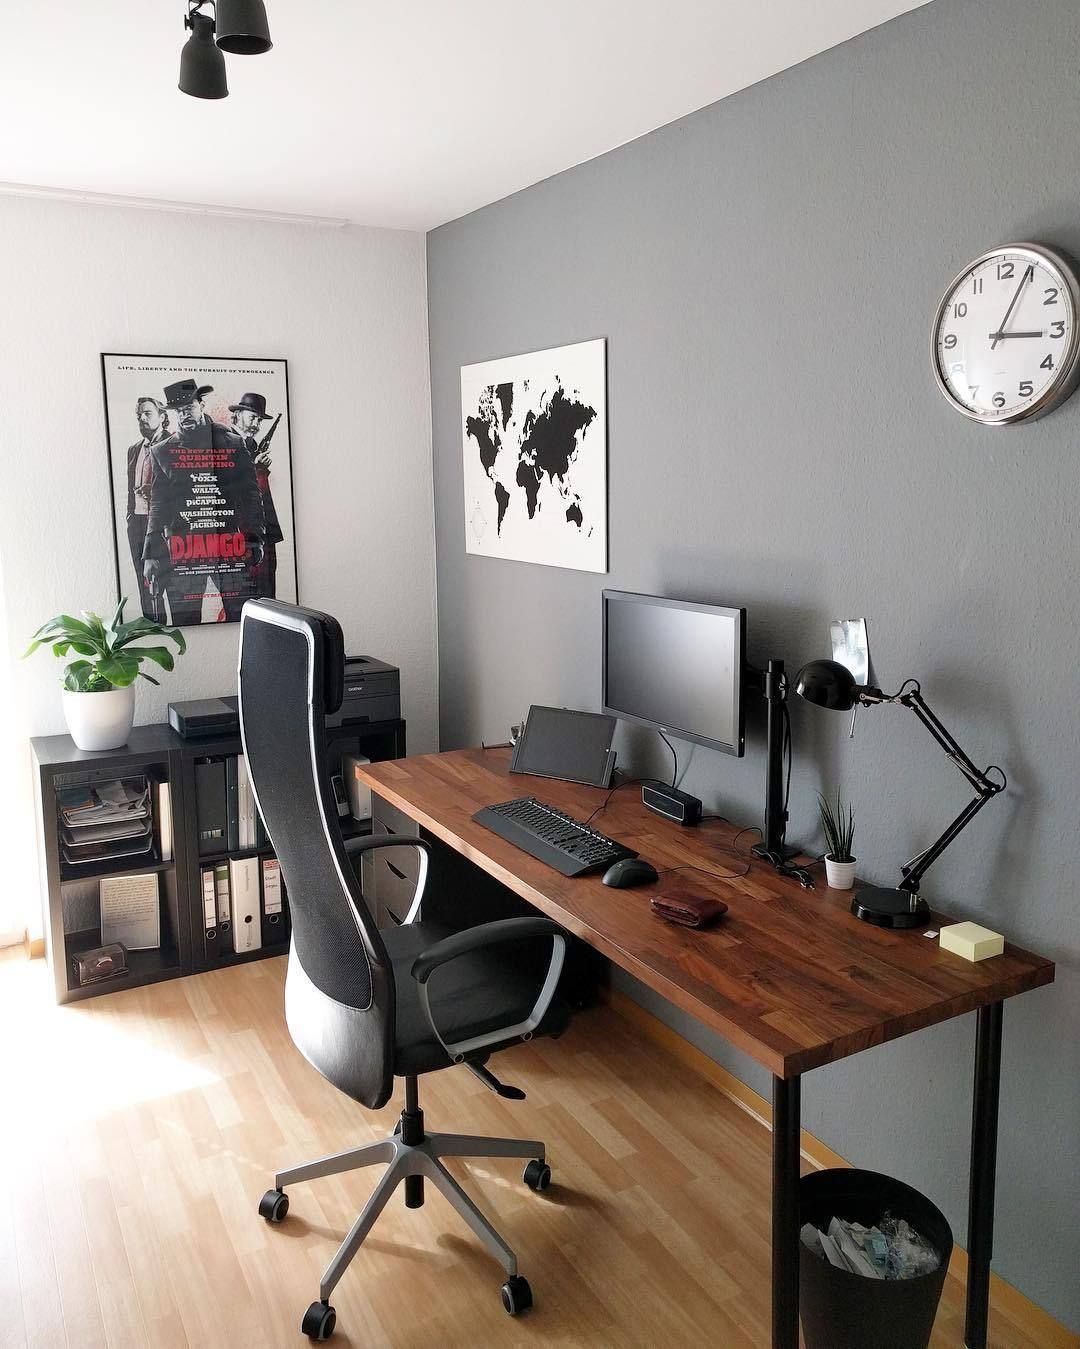 10 Outstanding Computer Desk Ideas Space Saving Gorgeous Picture Office Desk Designs Home Office Setup Home Office Design